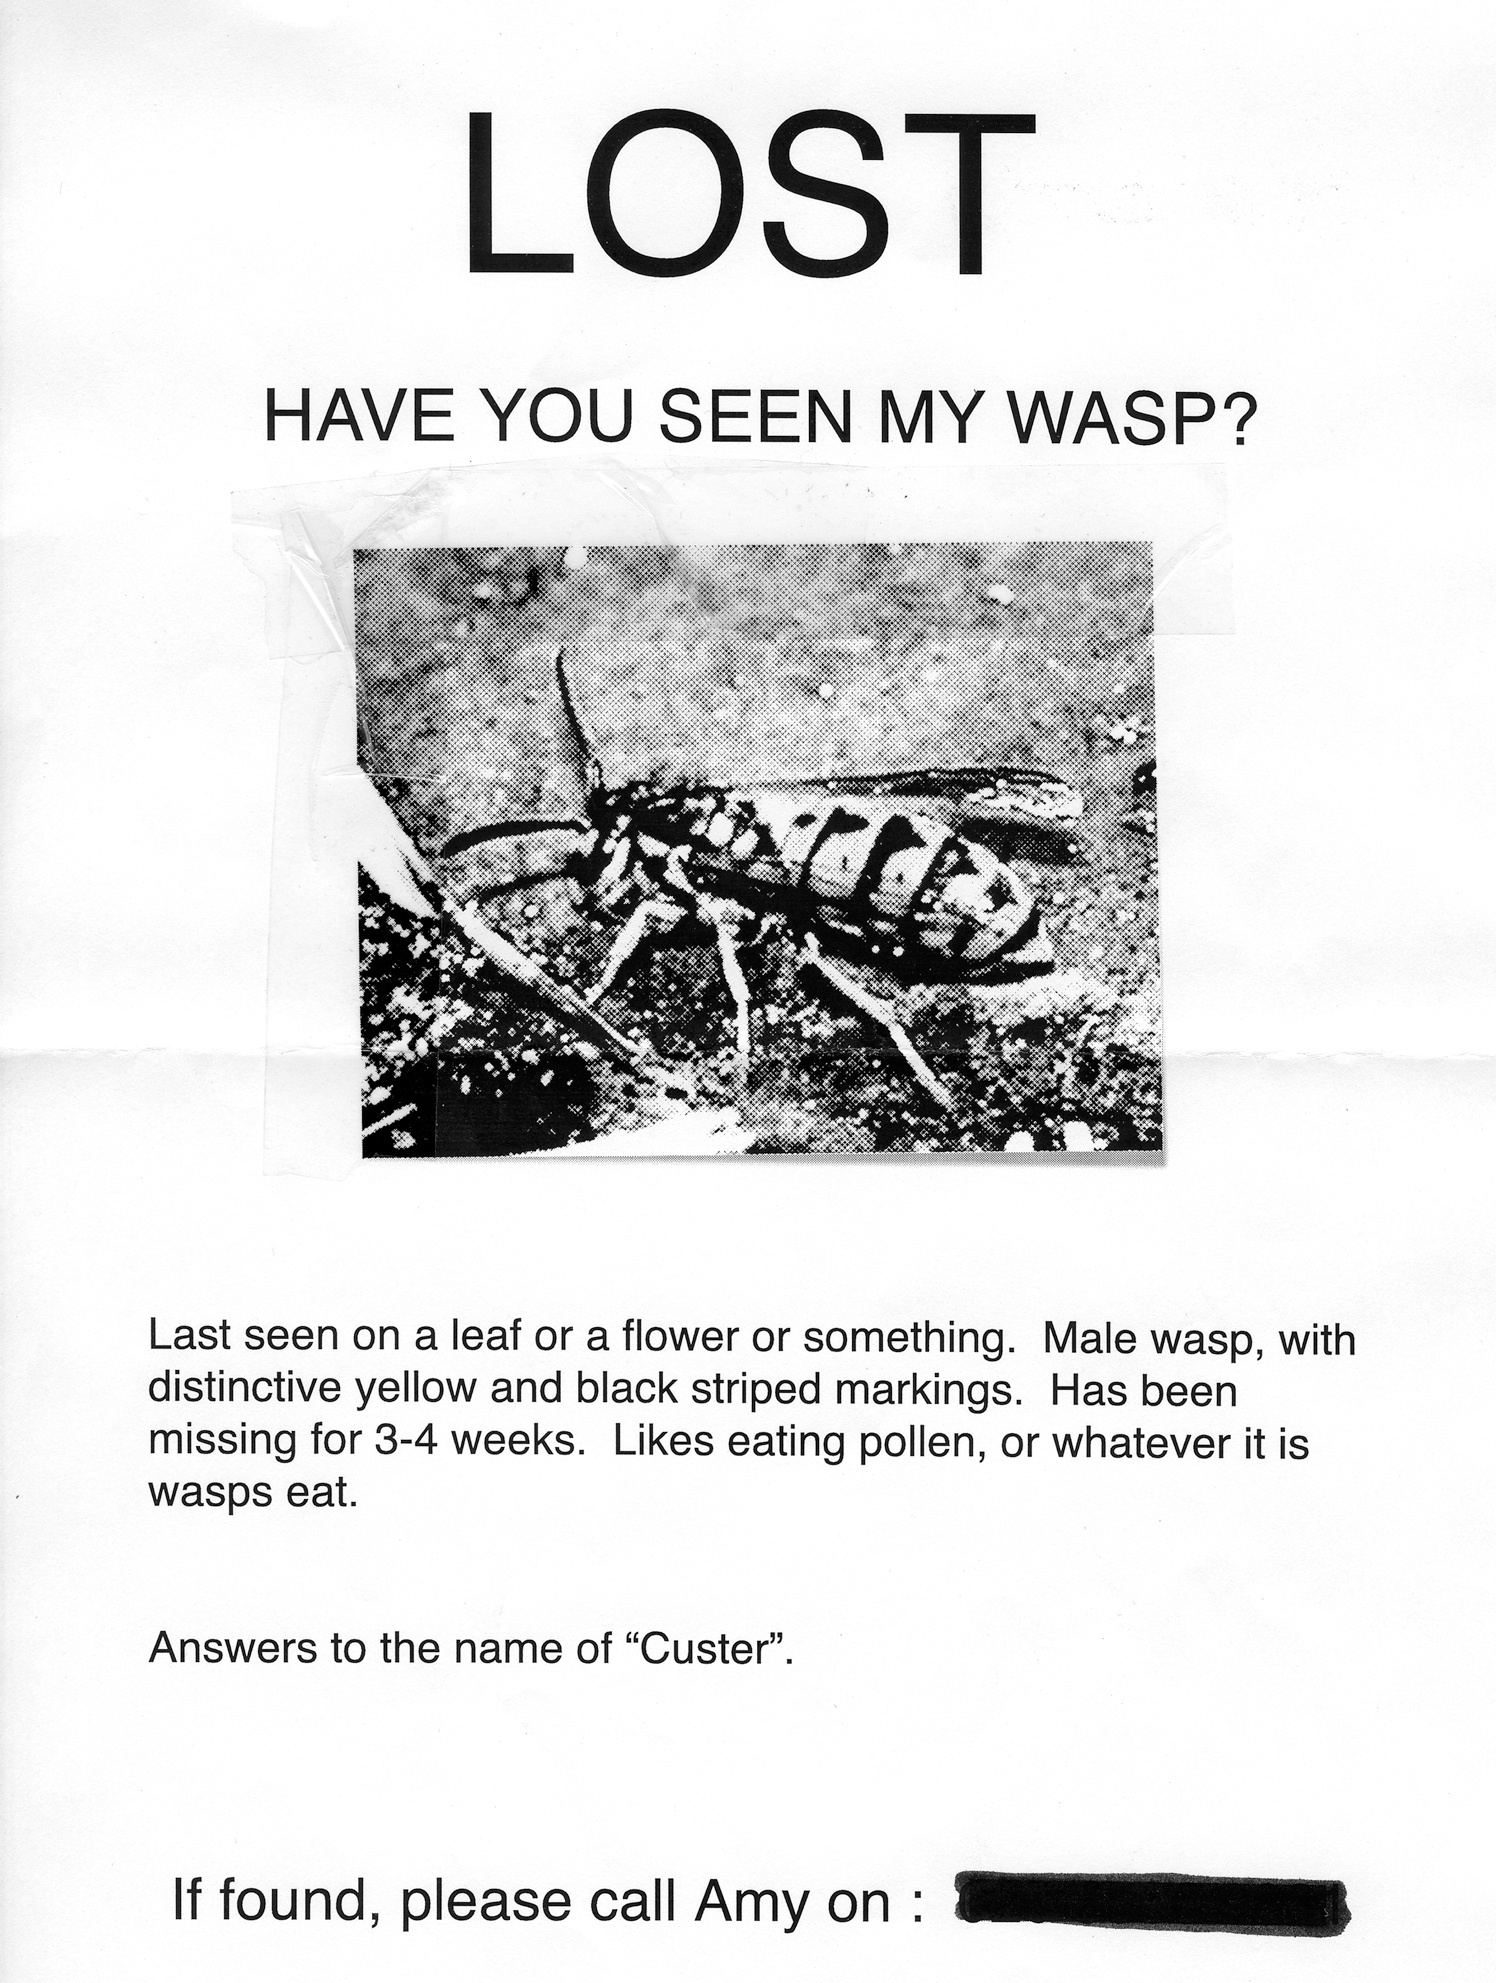 Lost. Have You Seen My Wasp?